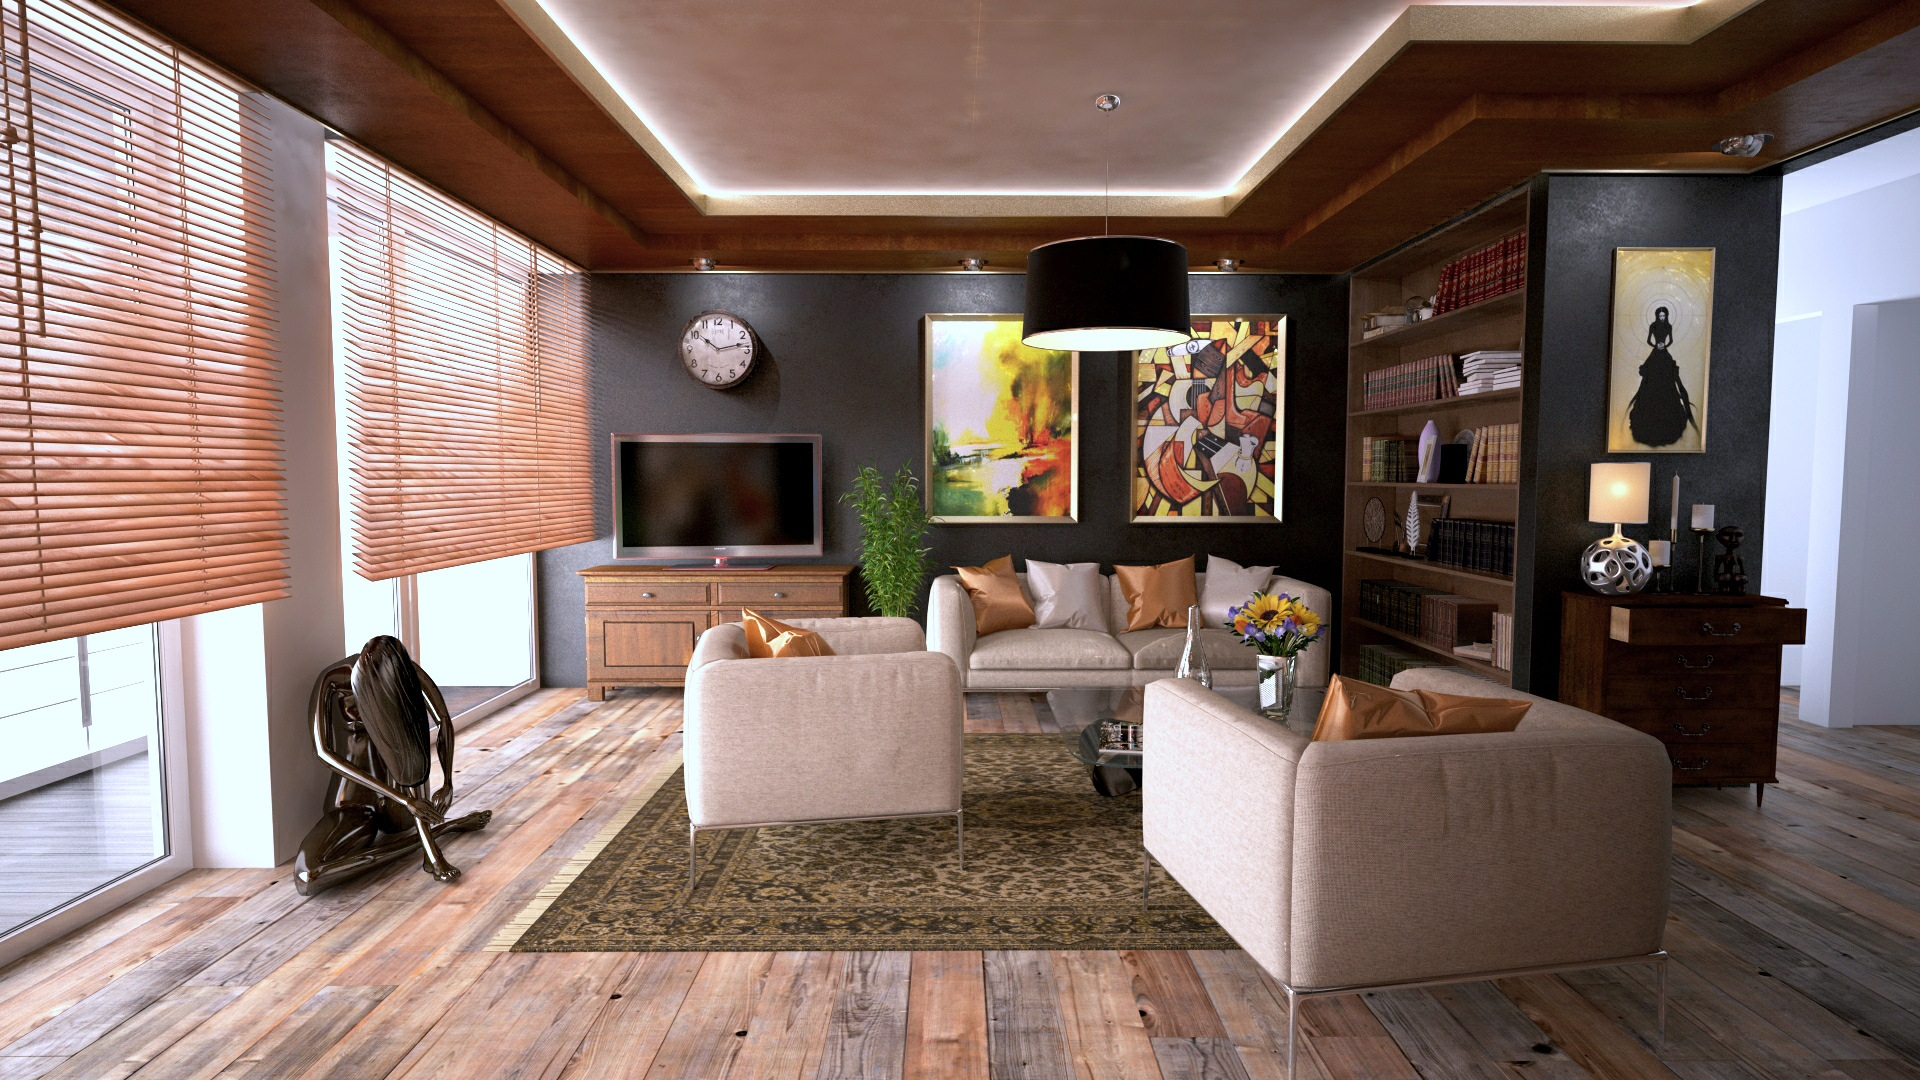 360tip how to stage your home on a budget - How To Stage Your Home